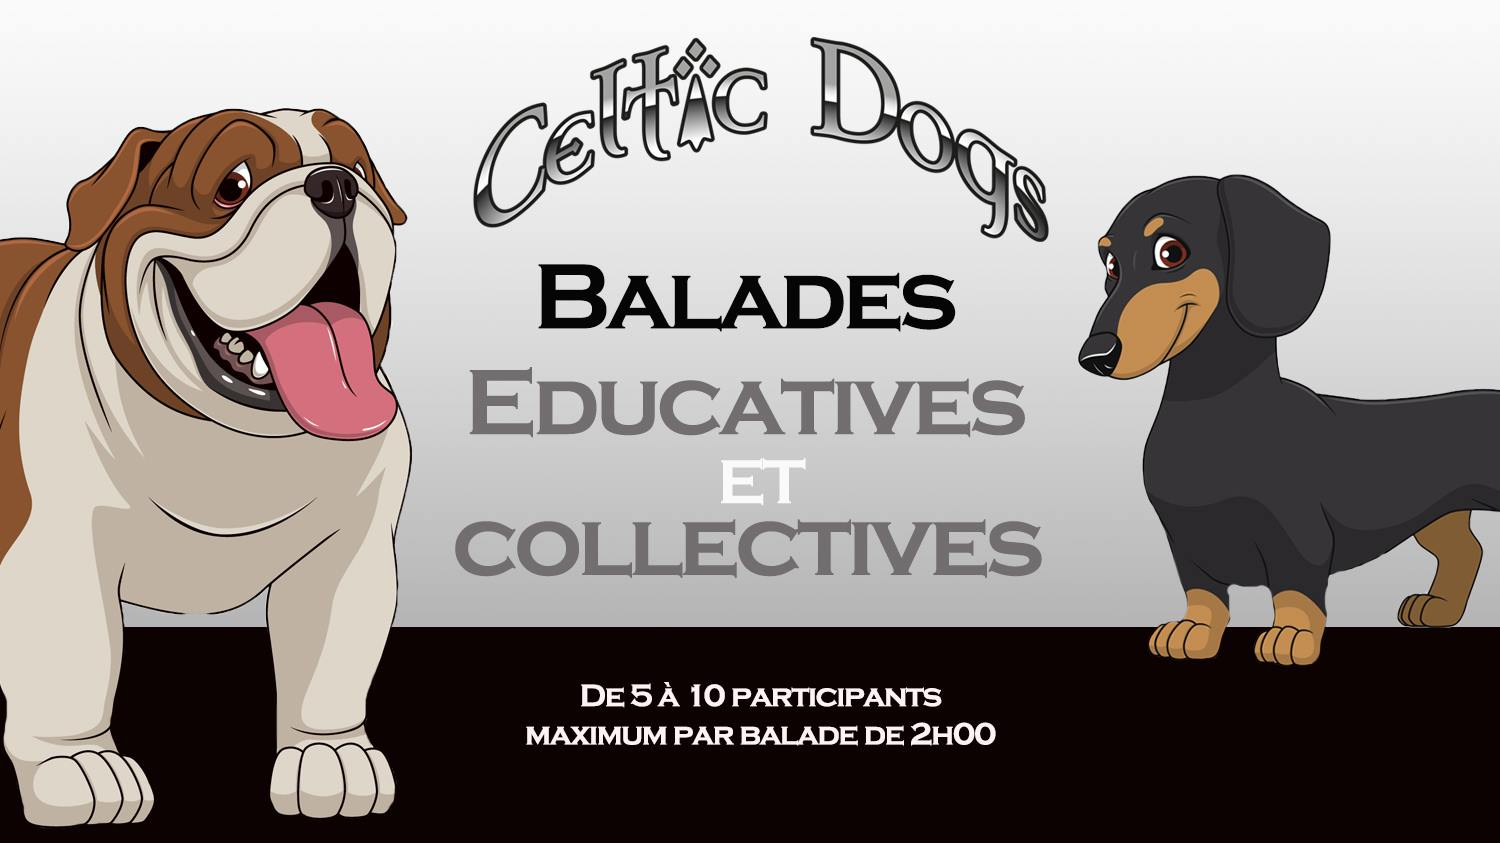 Balades educatives et collectives